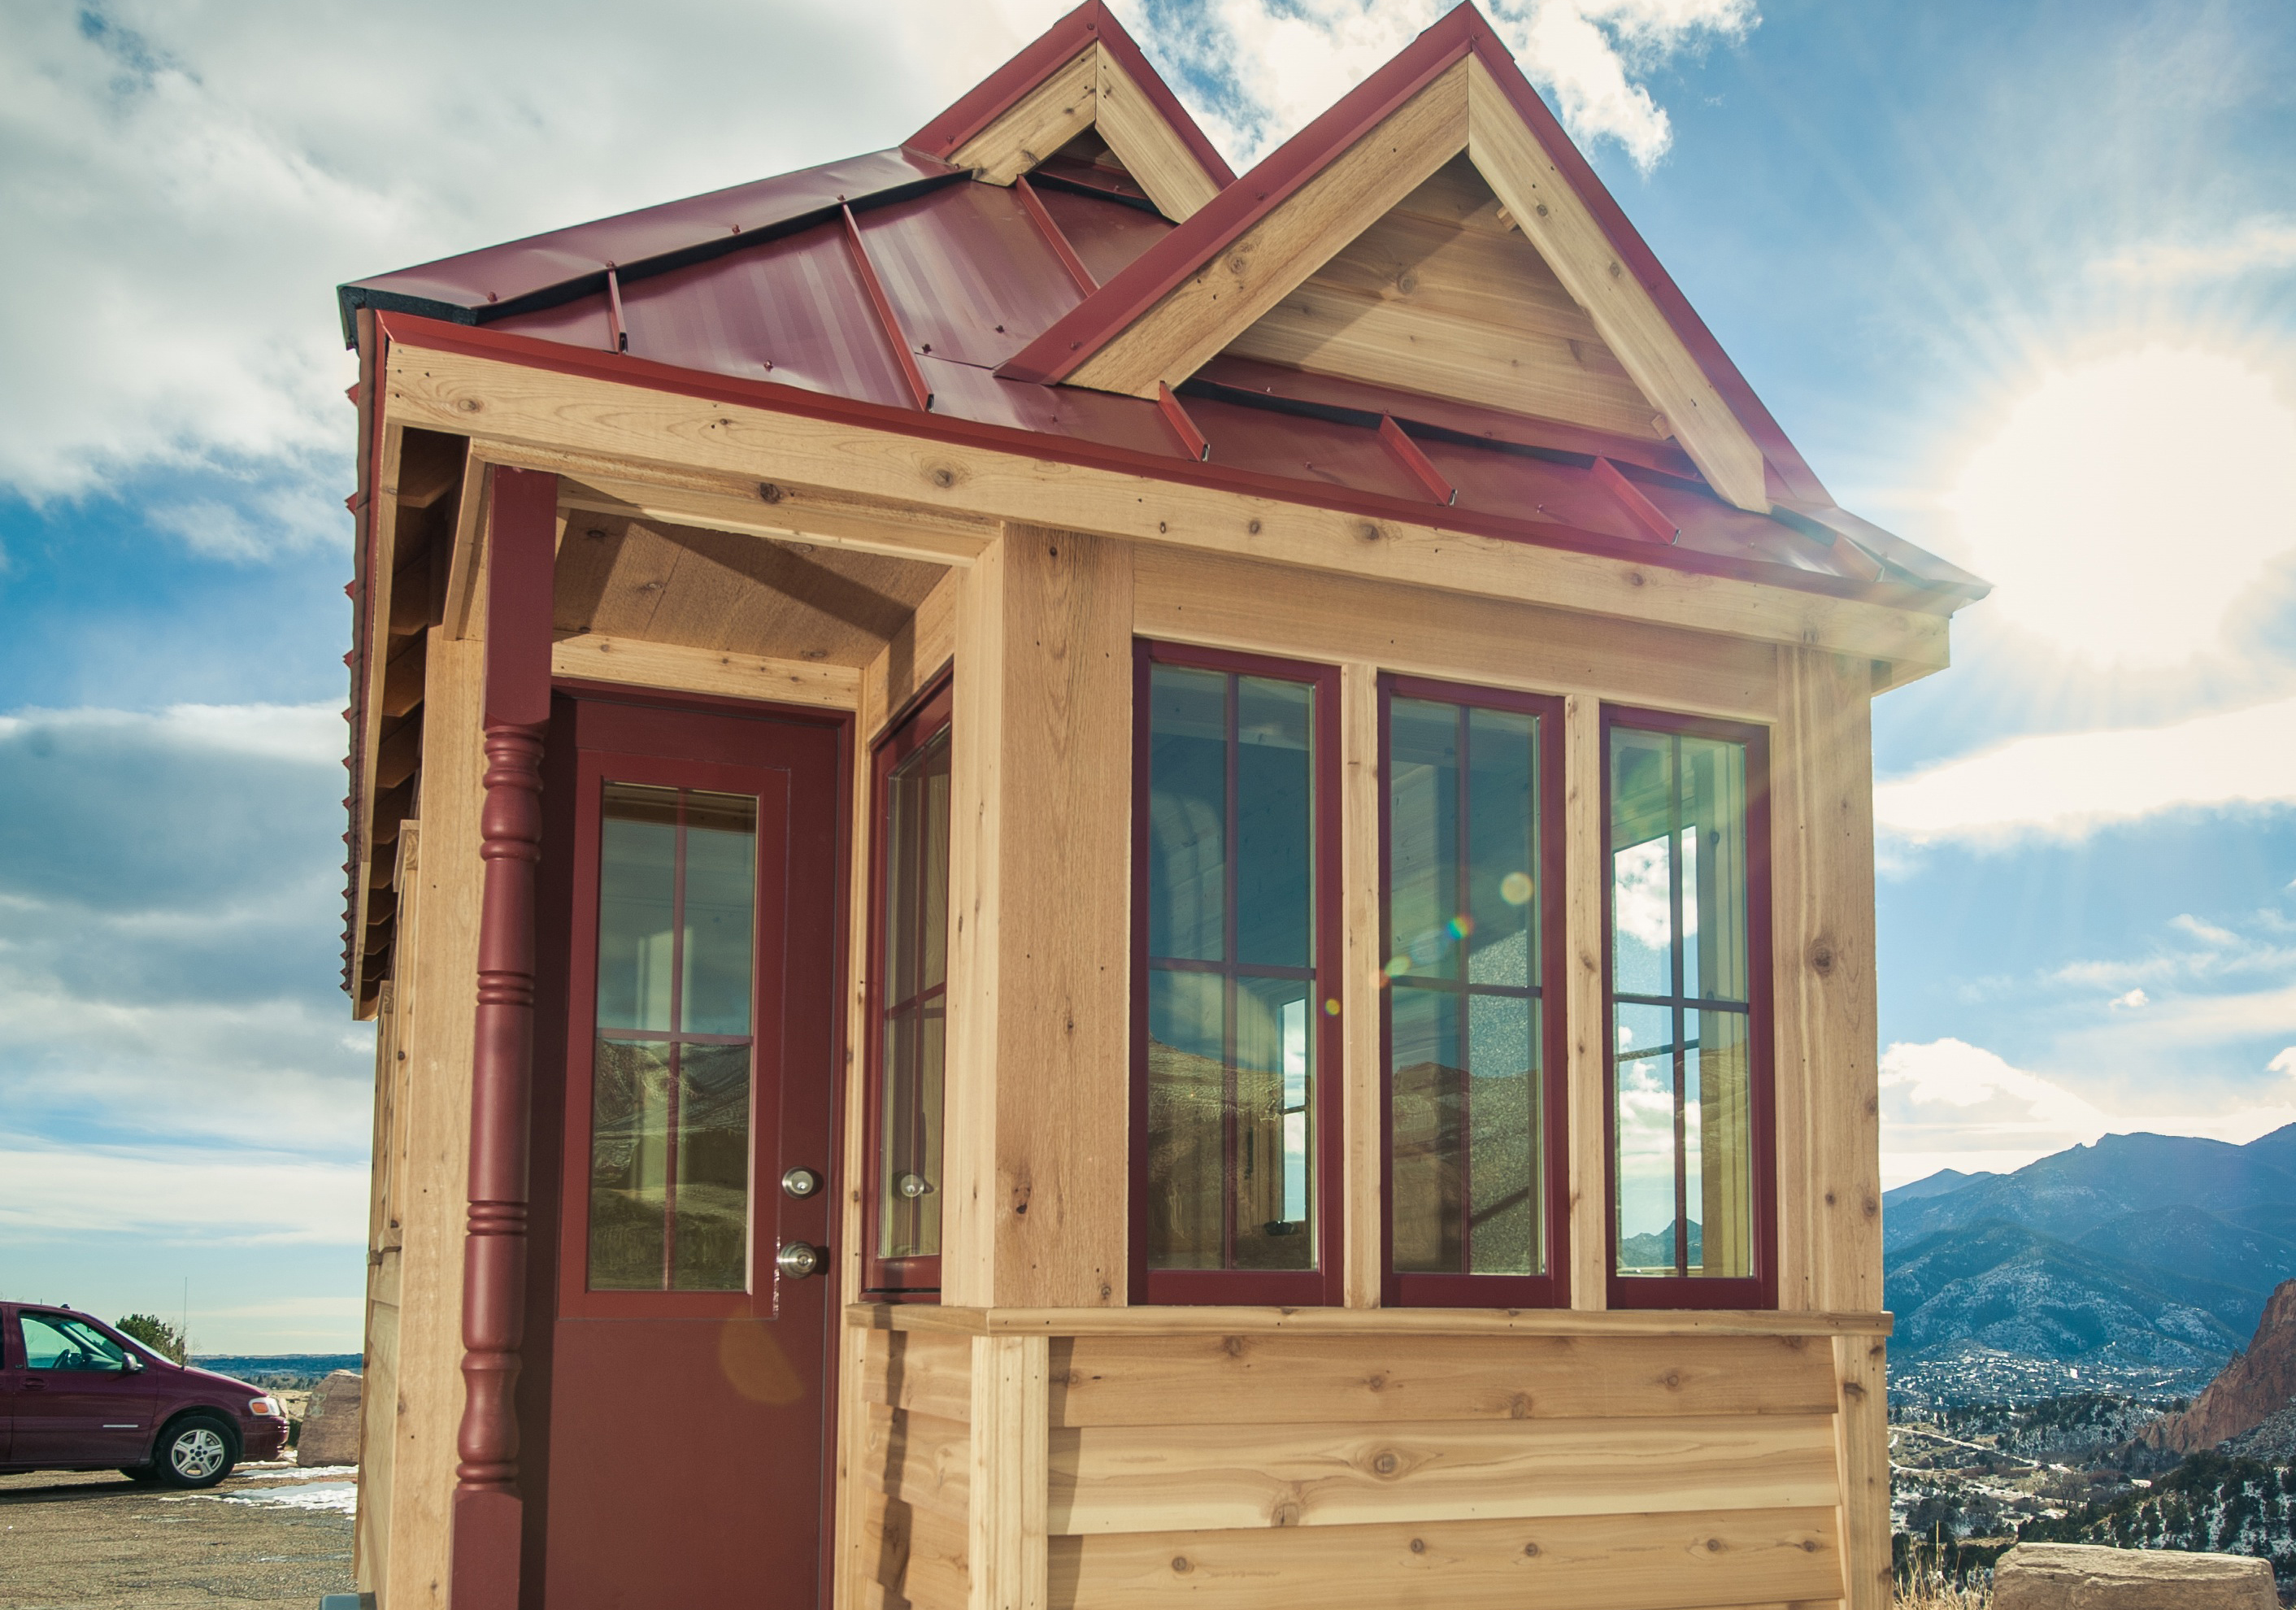 Square Foot Homes 17 tiny dream homes under 200 square feet | huffpost